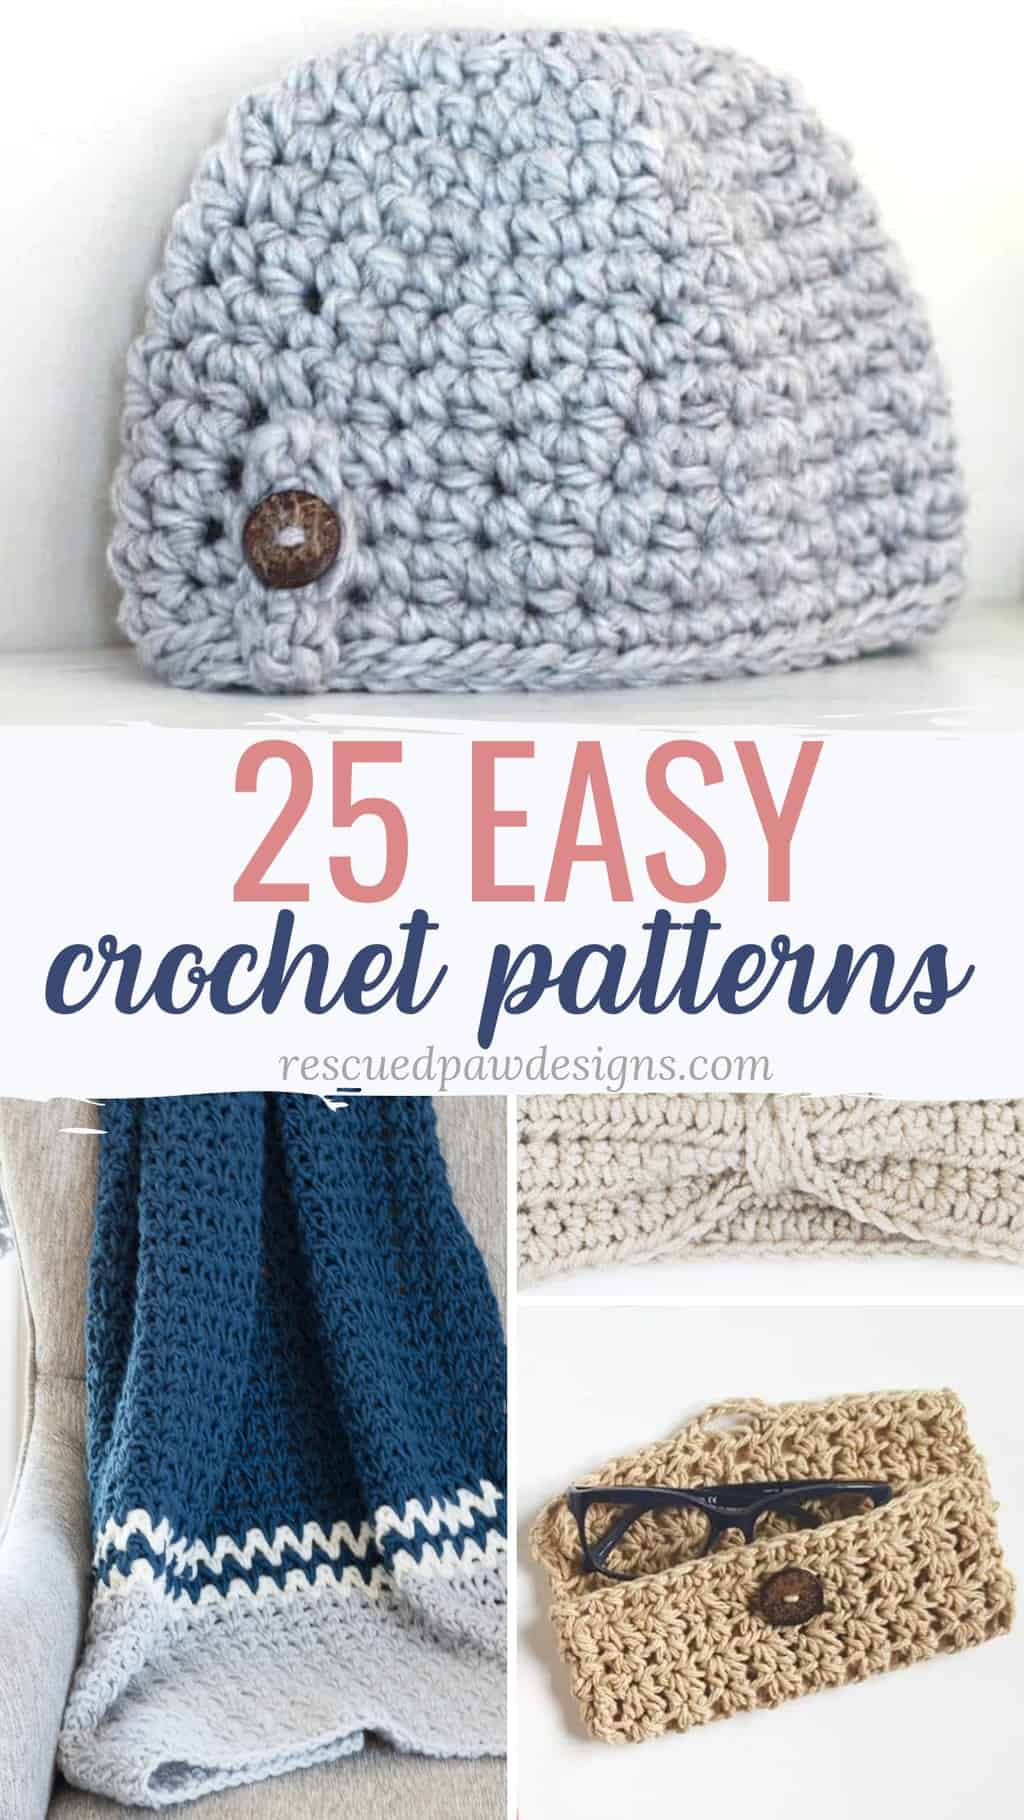 Twenty-five quick & easy crochet patterns that you can crochet. Great for beginners or someone who wants to crochet a fast project. List from easycrochet.com #easycrochetpatterns #beginnereasypatterns #freecrochetpatterns via @easycrochetcom